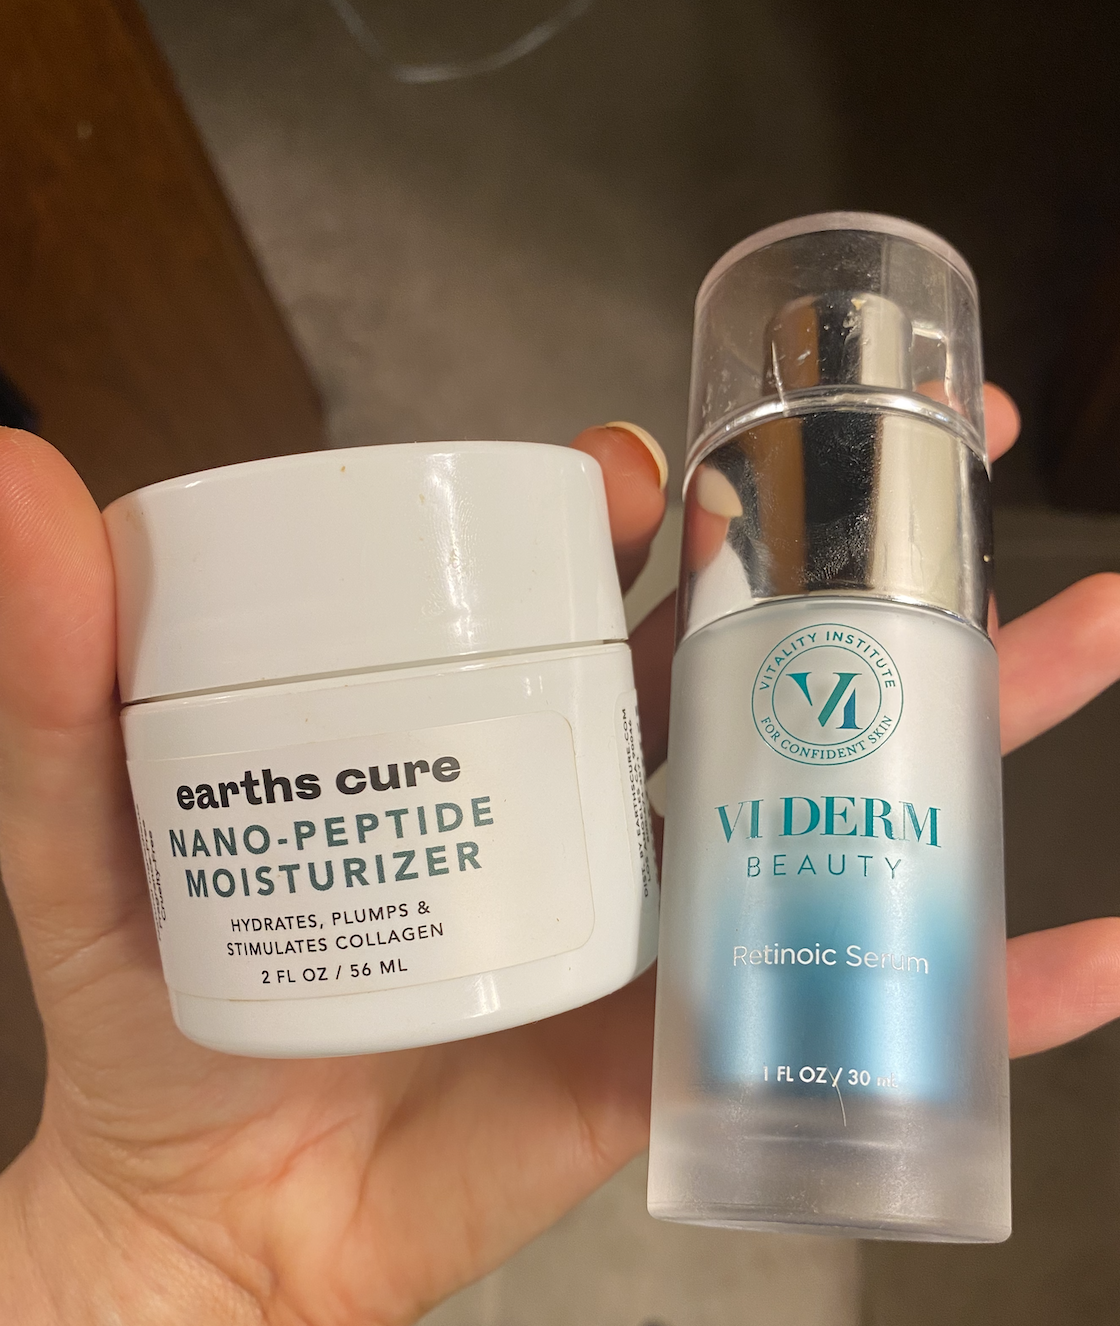 Photos of the two products